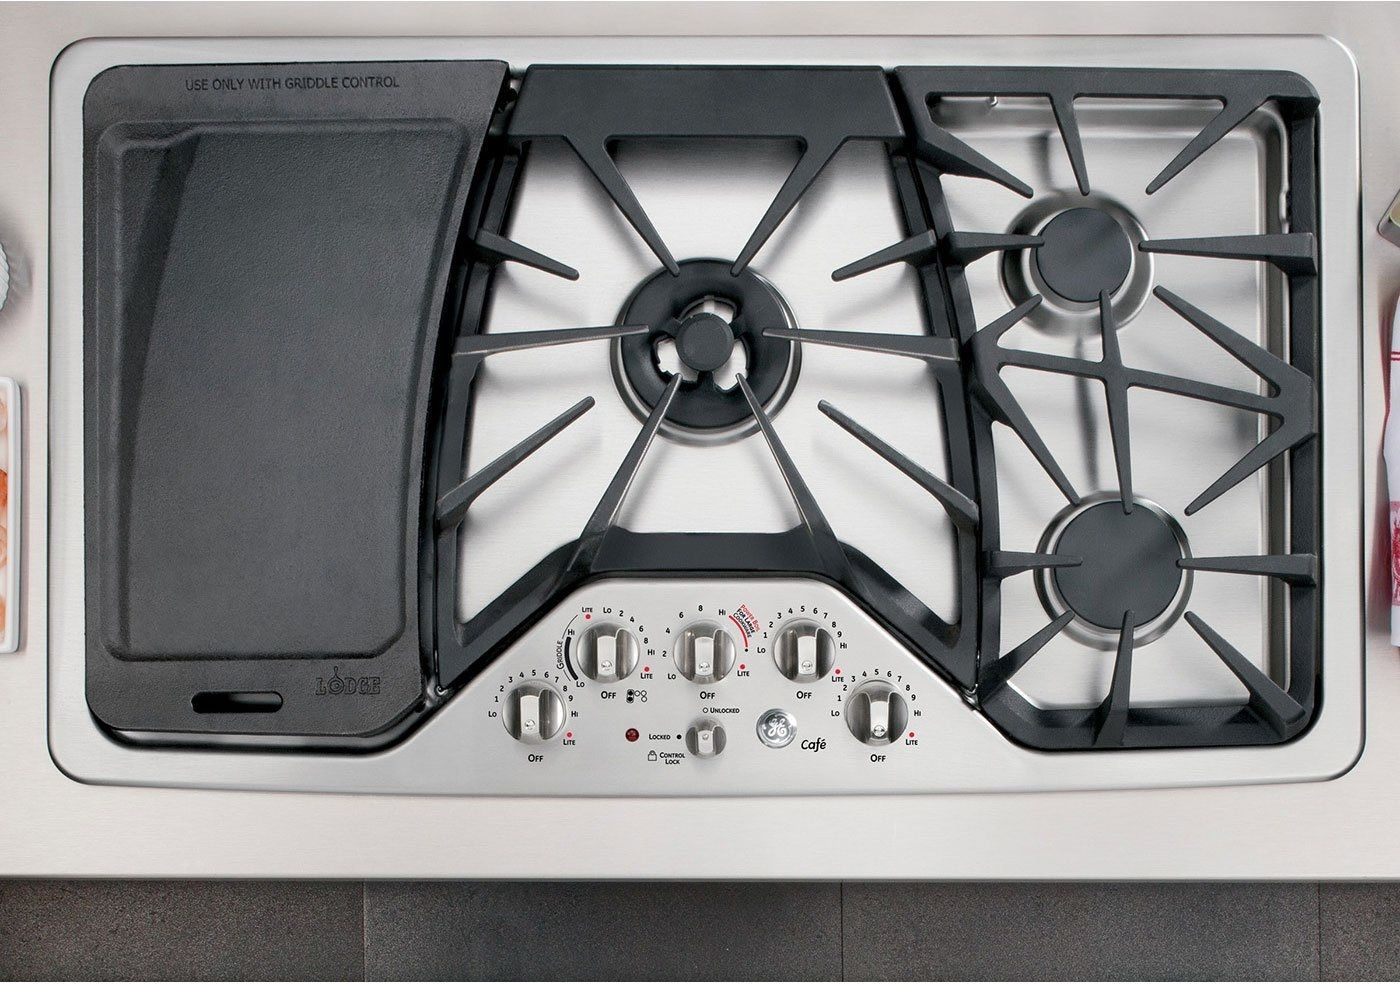 30 Inch Gas Cooktop Gas Cooktop Cooktop Kitchen Appliances